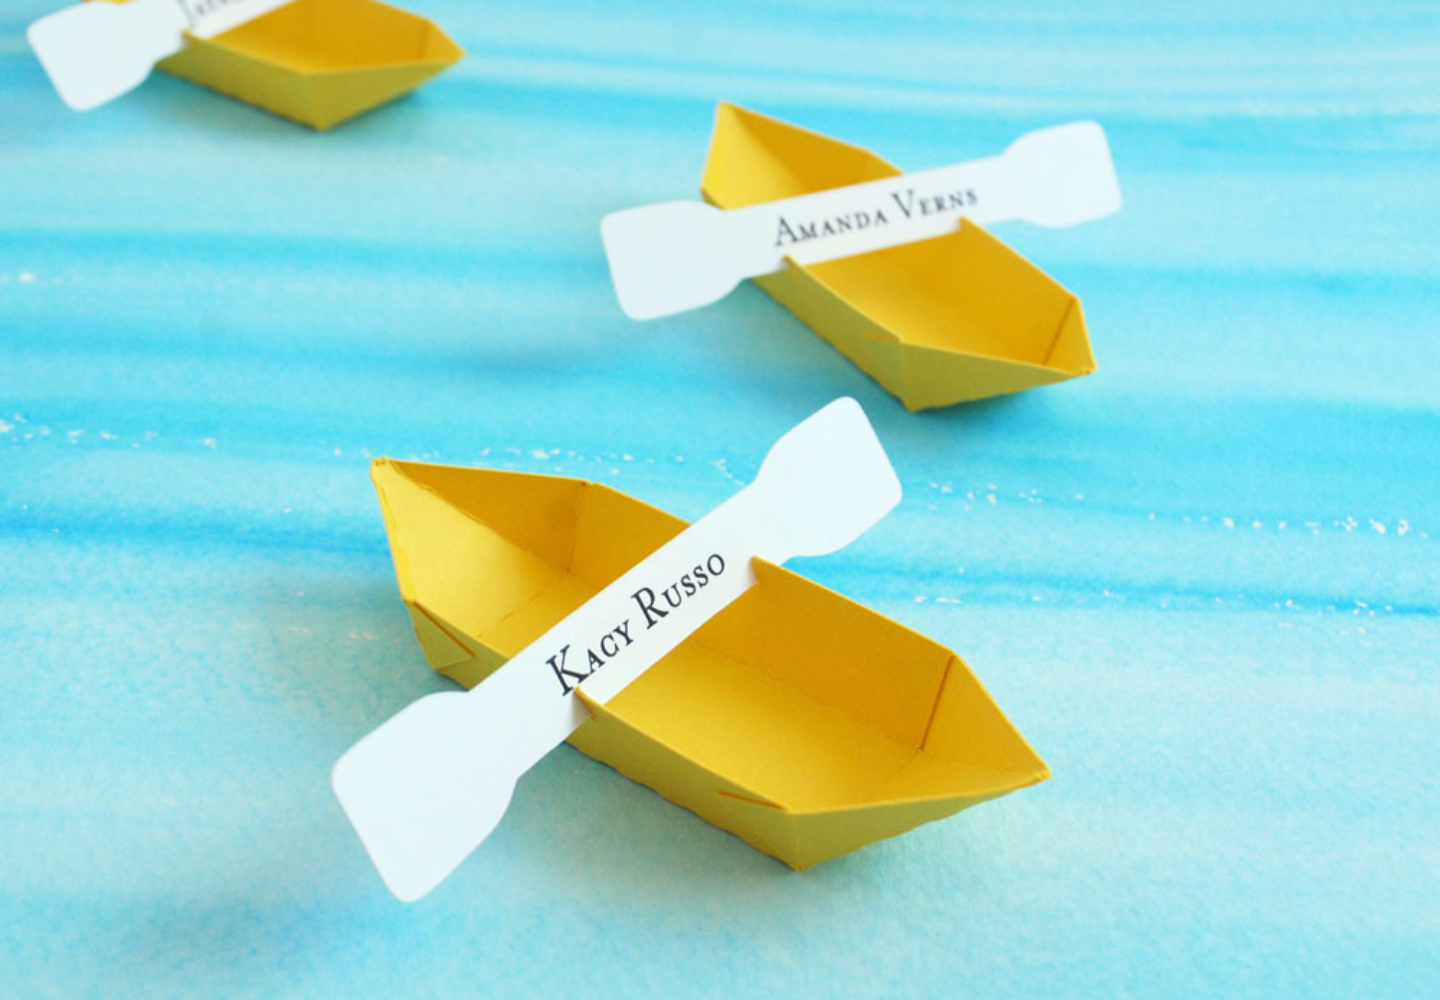 kayak-placecard